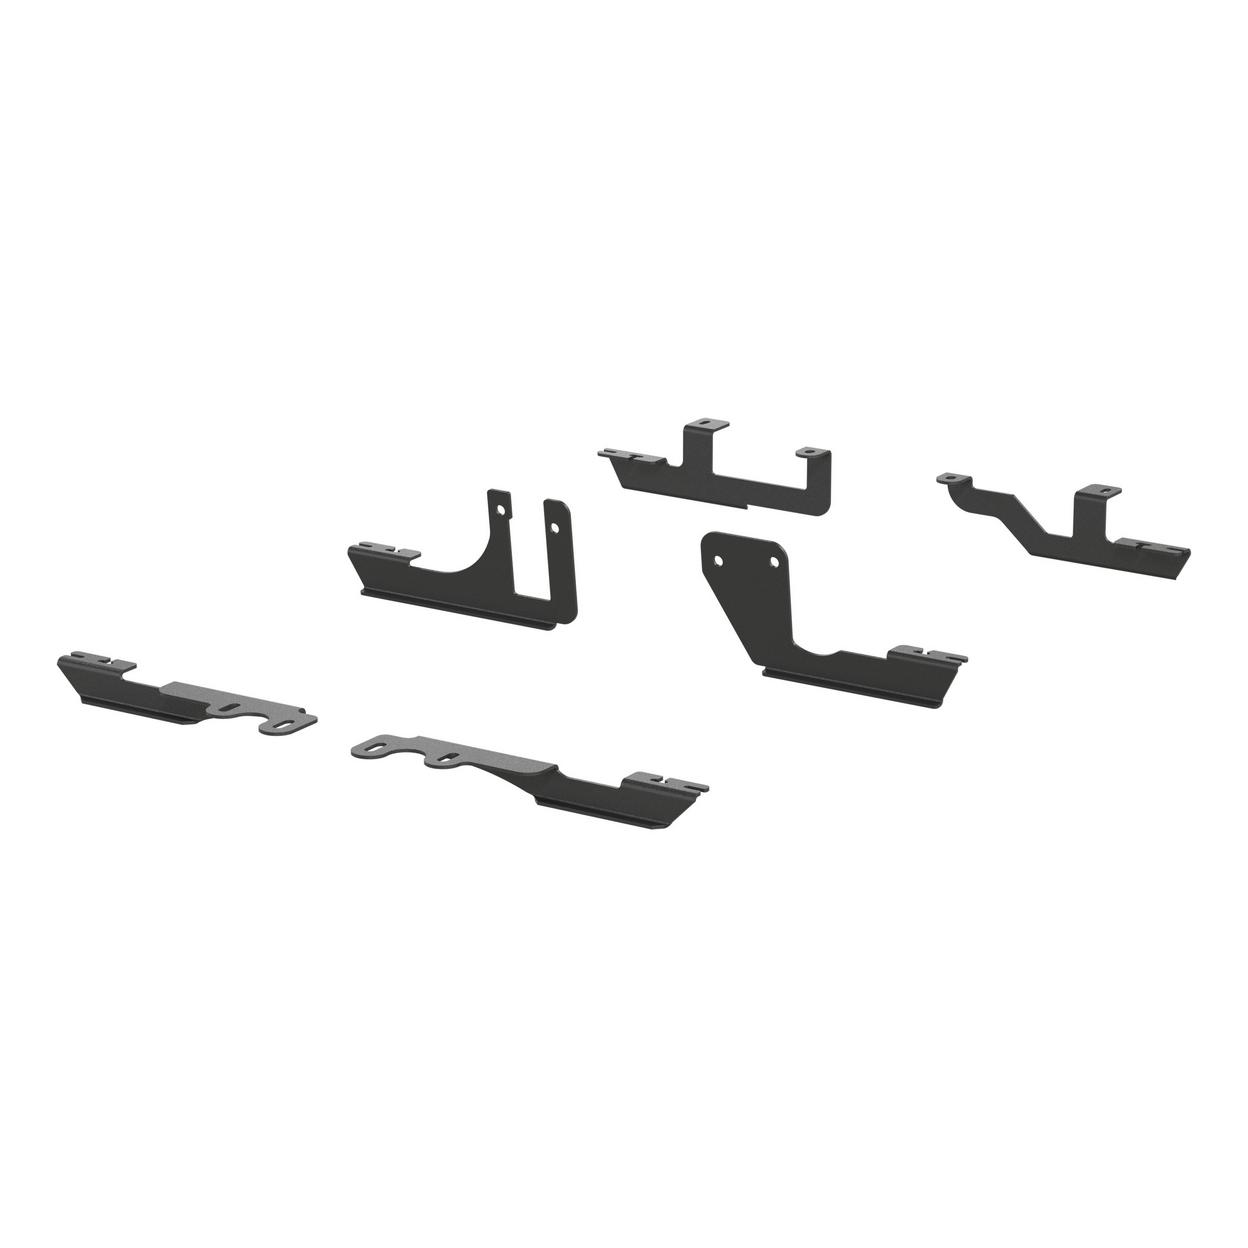 ARIES 2051109 Mounting Brackets for AeroTread Running Boards Sold Separately